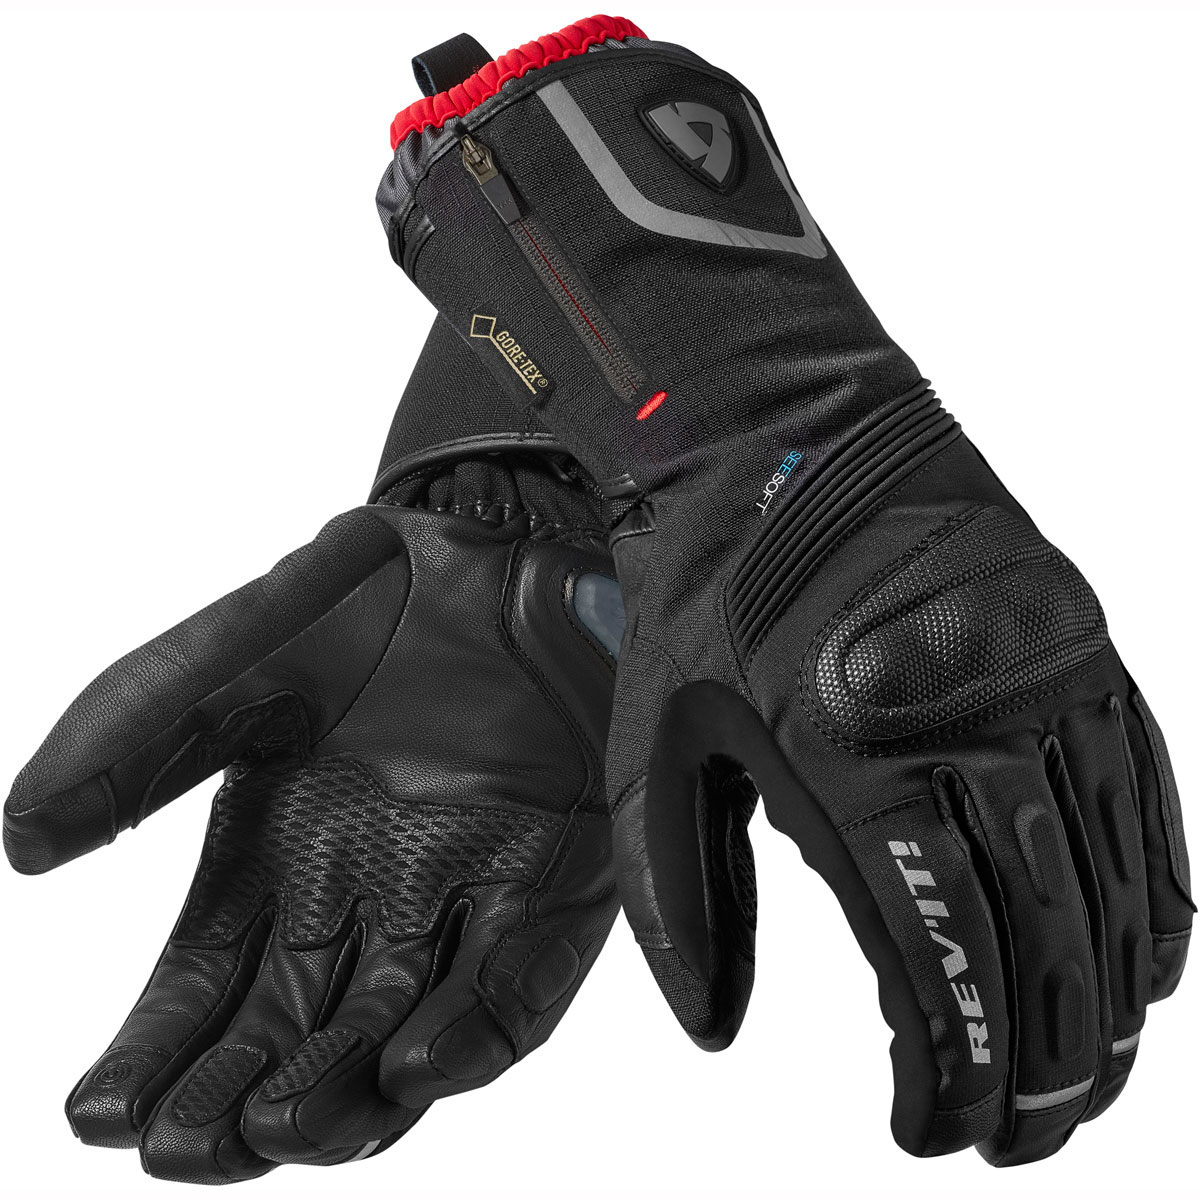 Rev'it! Taurus Gore-Tex Gloves - One of the Top 10 warmest motorcycle gloves ideal for Winter riding